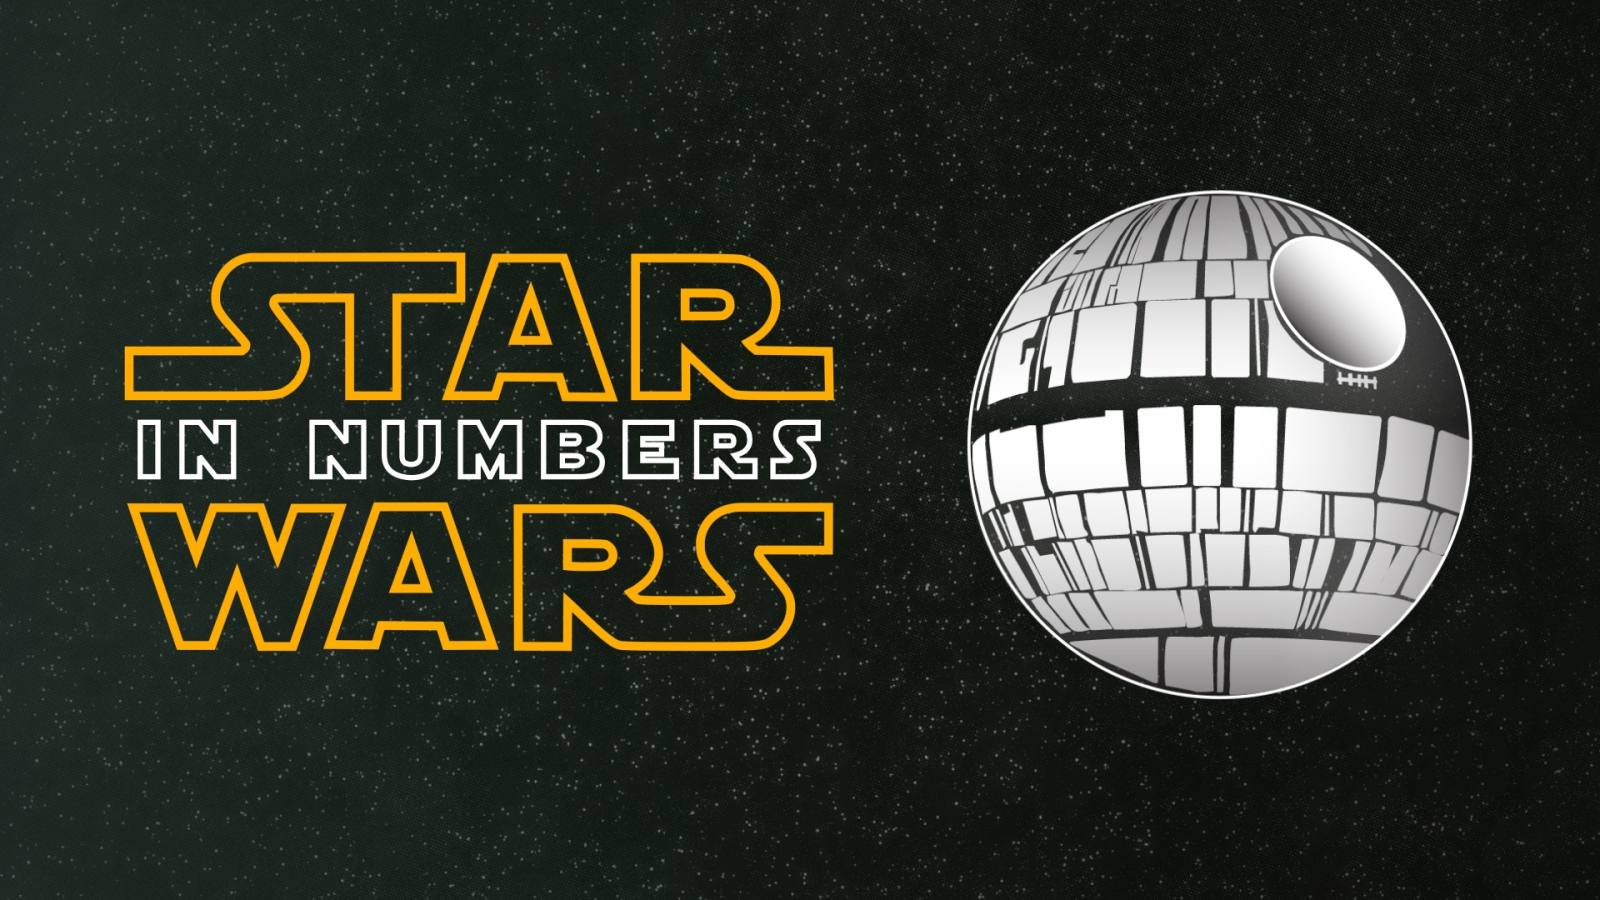 Star Wars in numbers